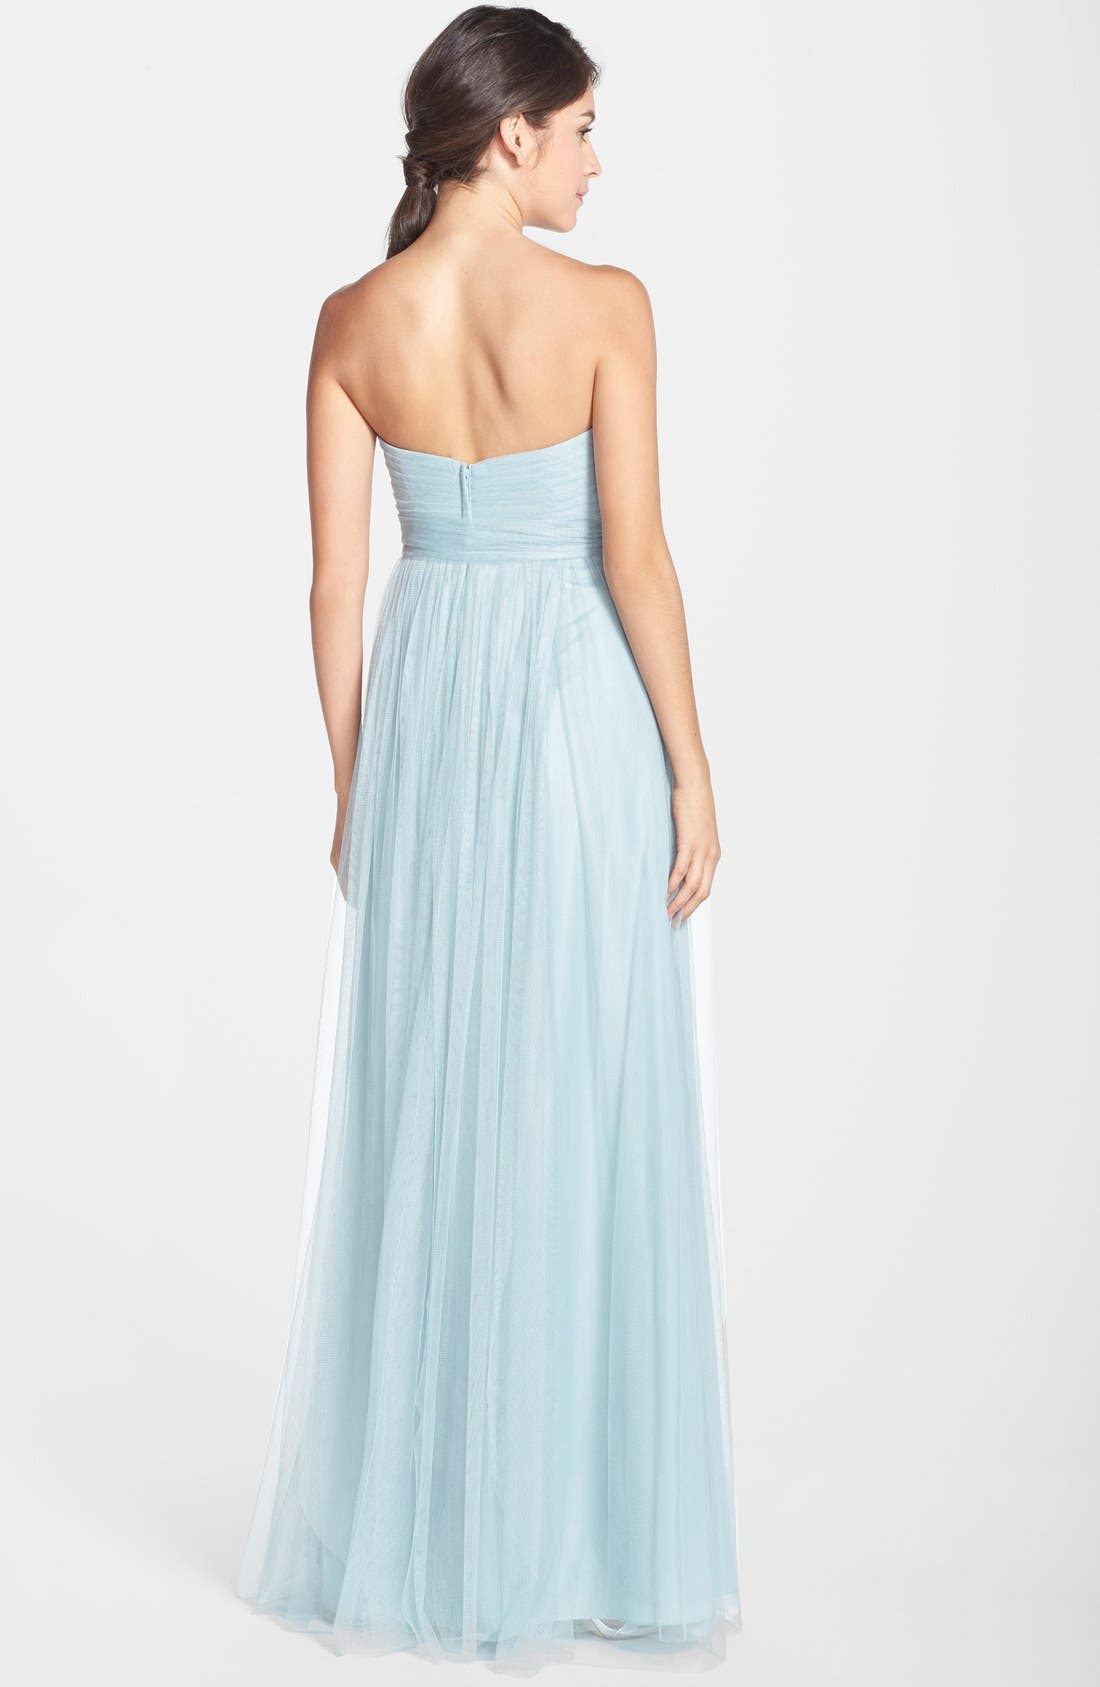 Annabelle Convertible Tulle Column Dress,                             Alternate thumbnail 159, color,